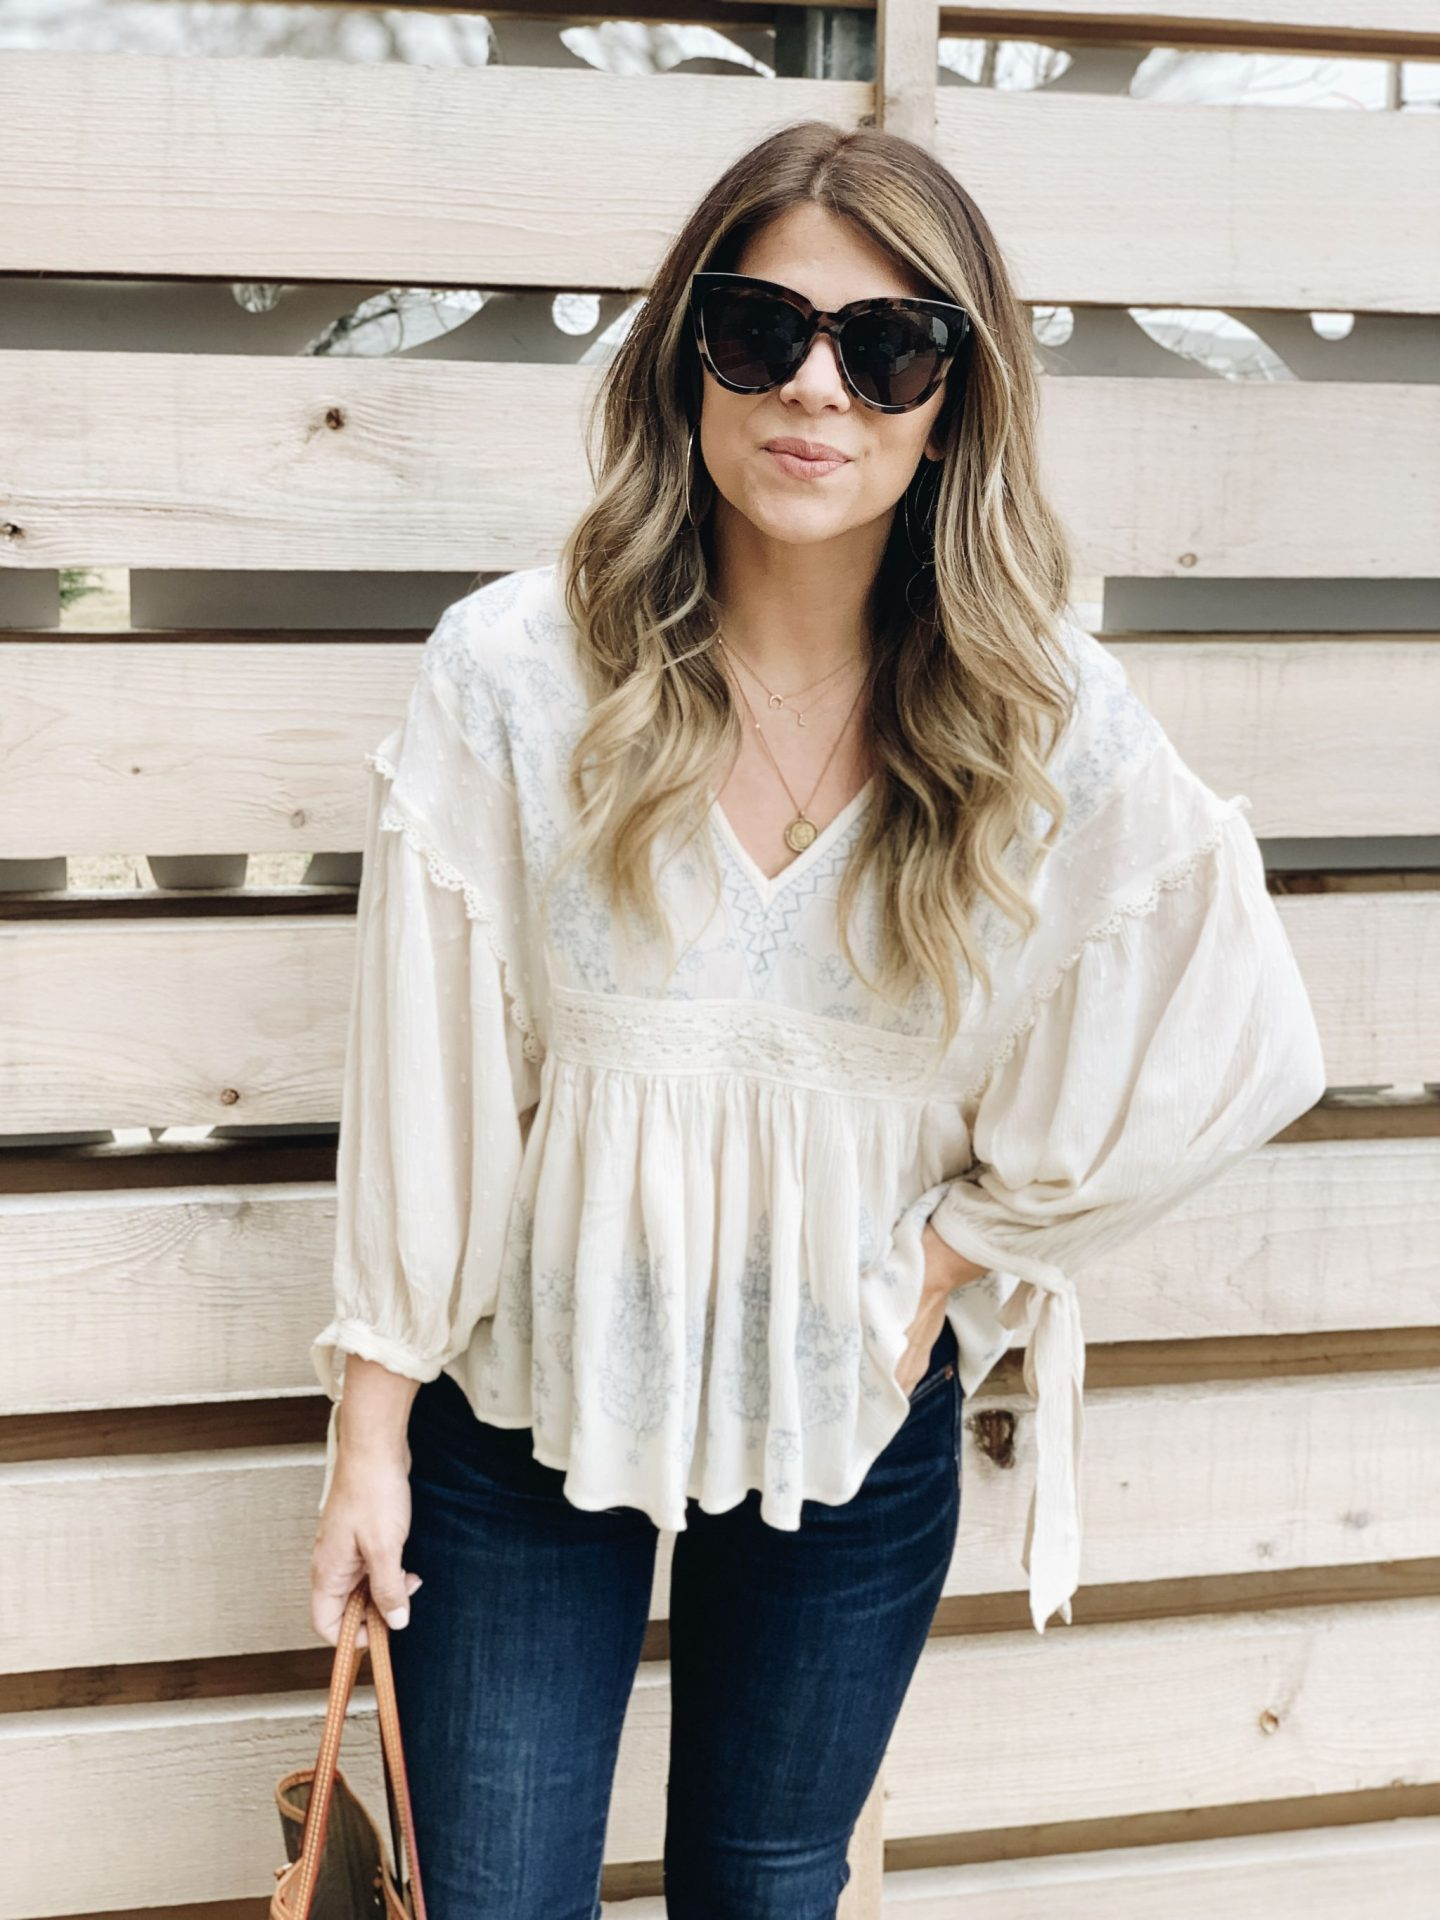 Invisalign Review, Invisalign, Coffee, Porter, Le Specs, Megan Markle Sunglasses, Neverfull gm, Orthodontics, @stelladot, Spring Style, Boho Top